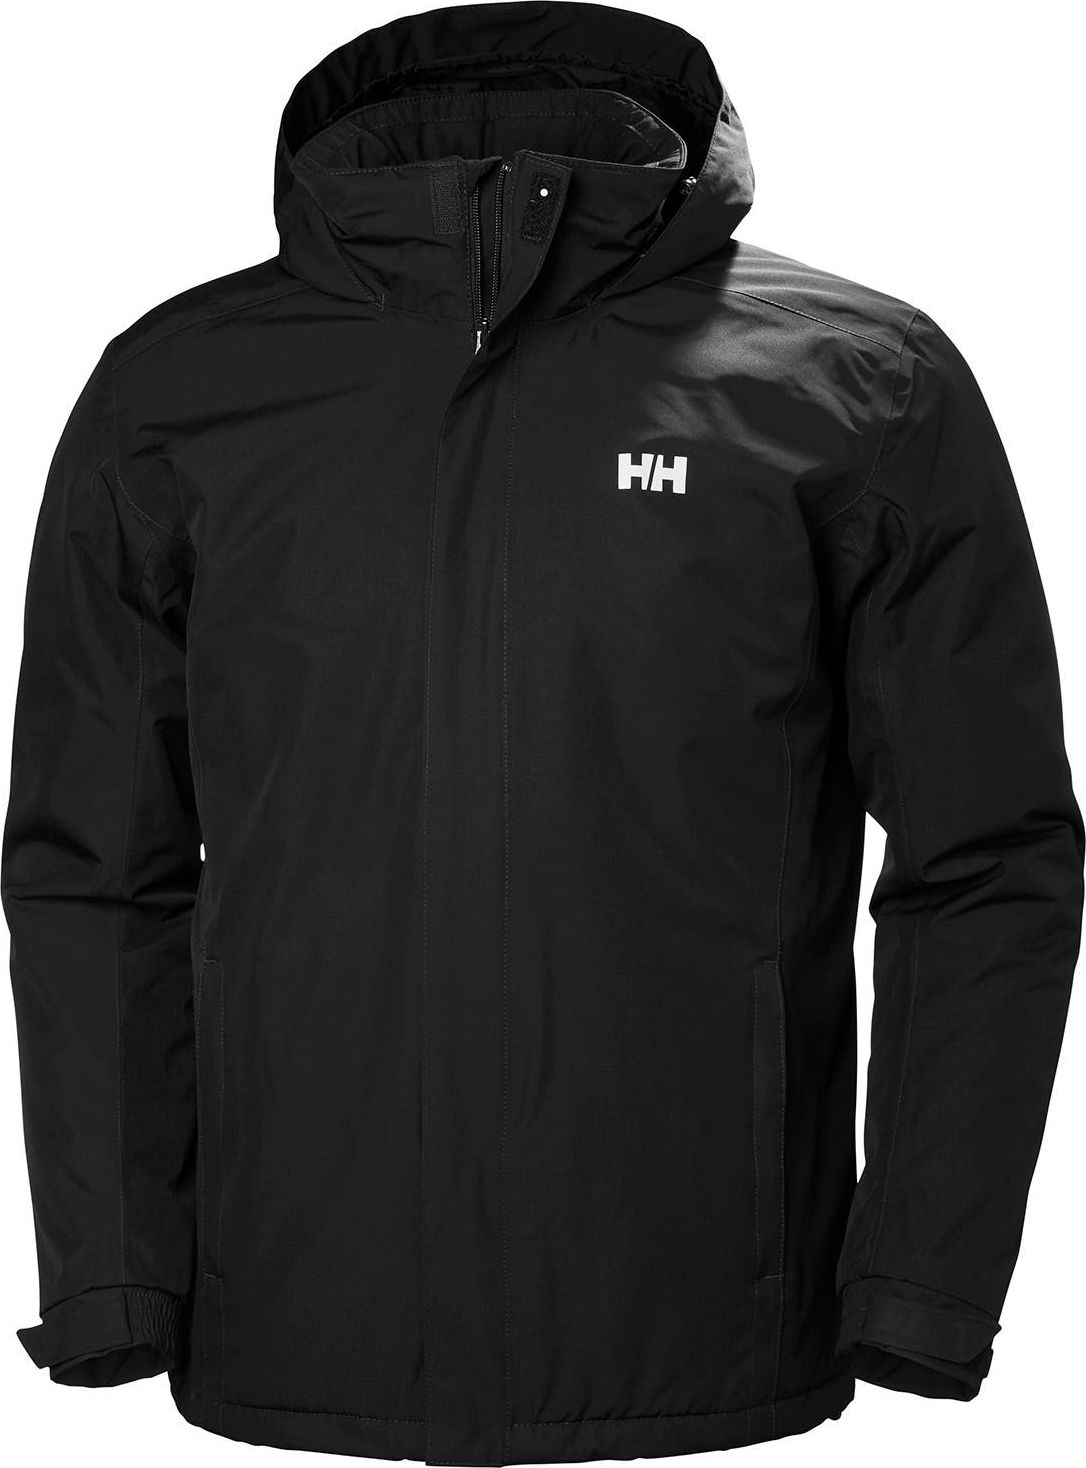 HELLY HANSEN Dubliner Insulated Jacket Black S